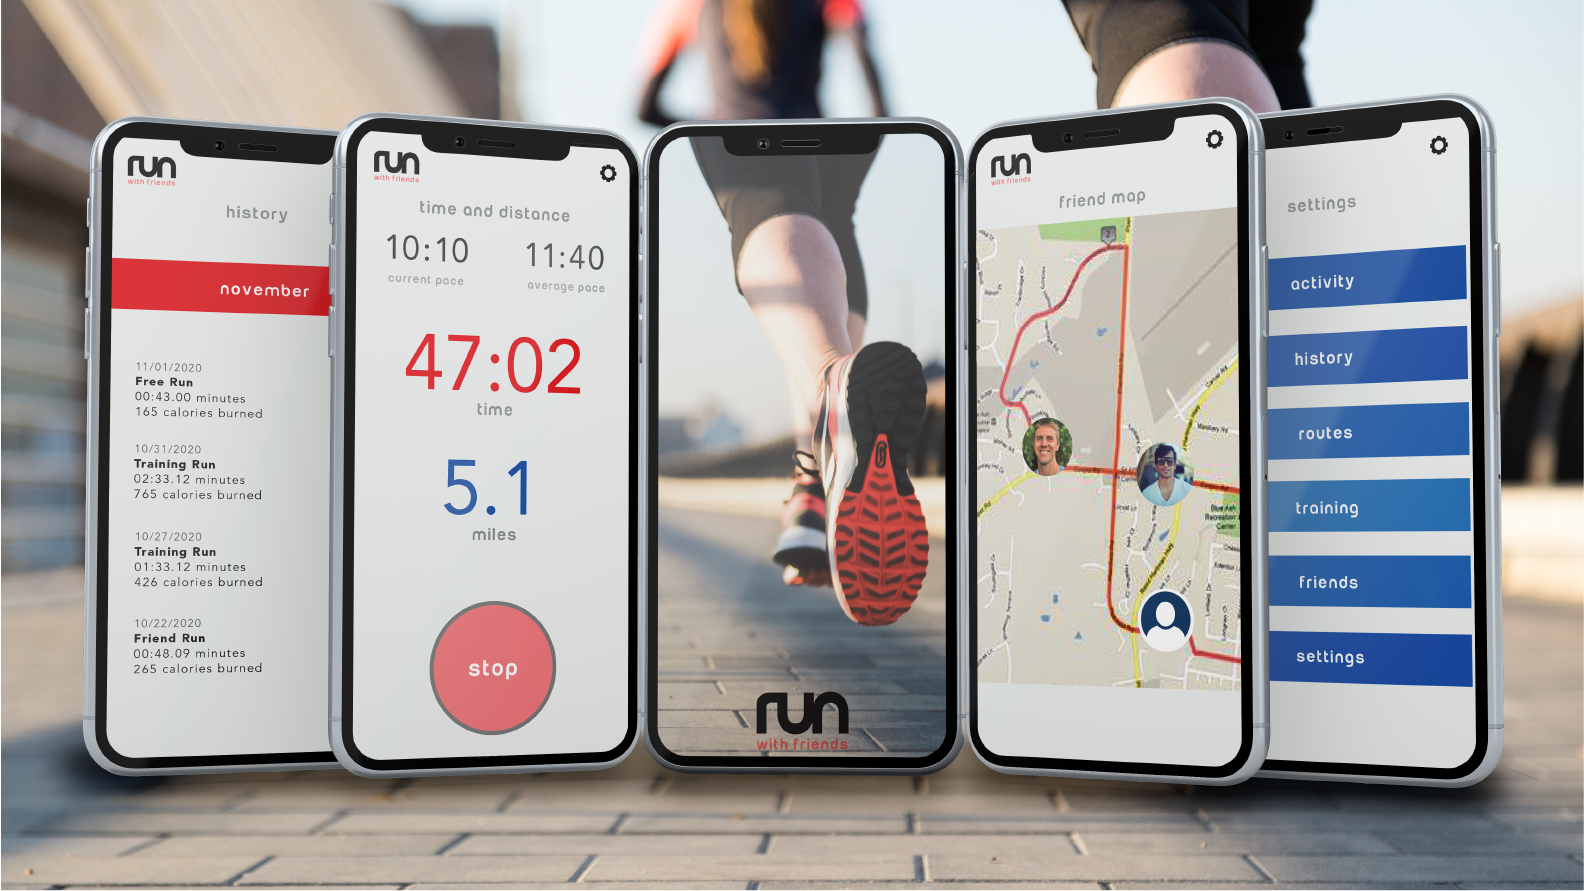 Run with Friends Mobile App